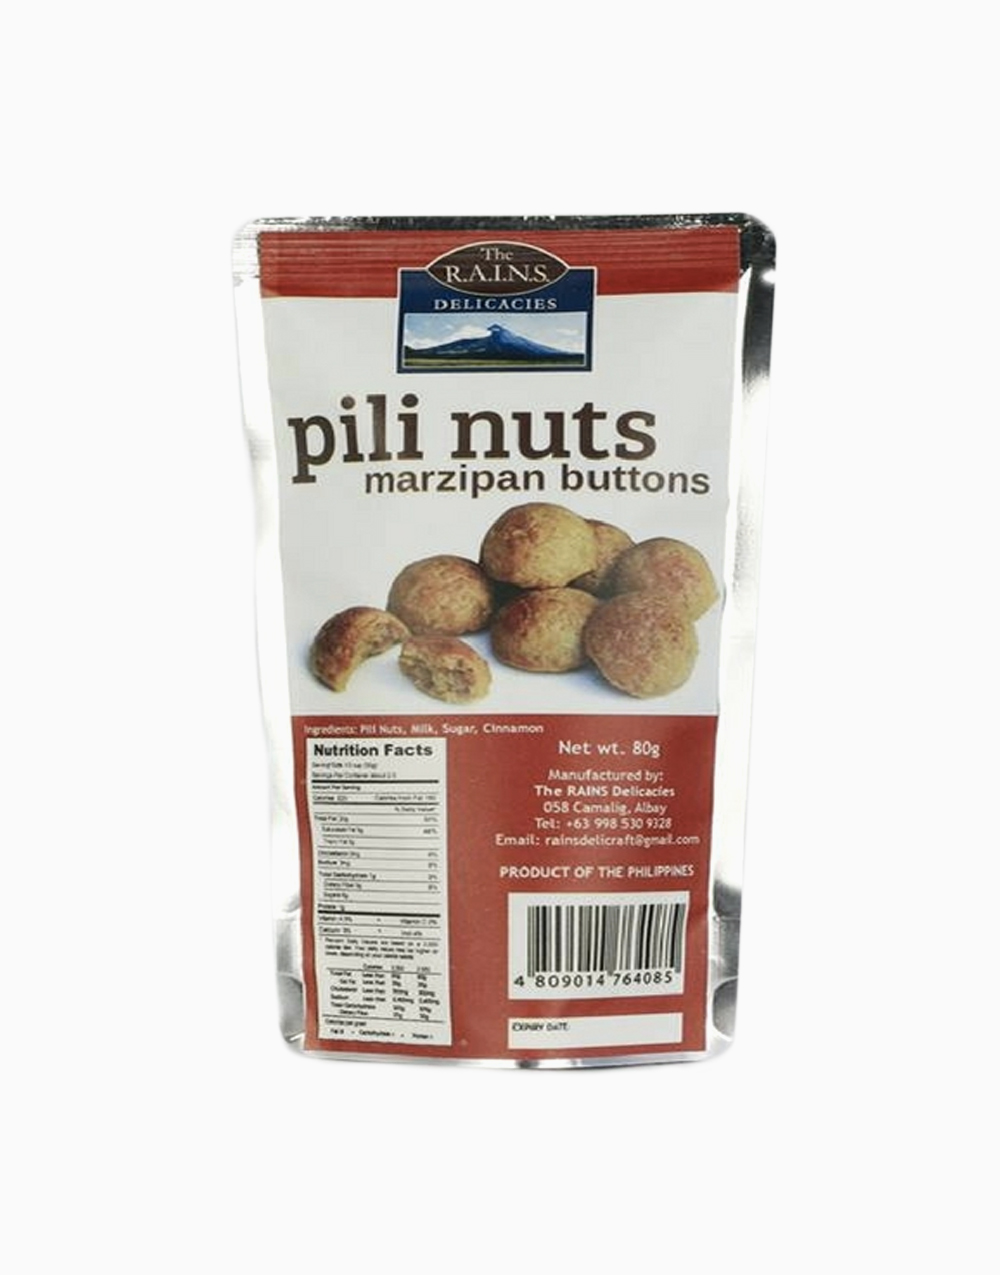 Marzipan Buttons Pili Nuts by Rains Delicacies